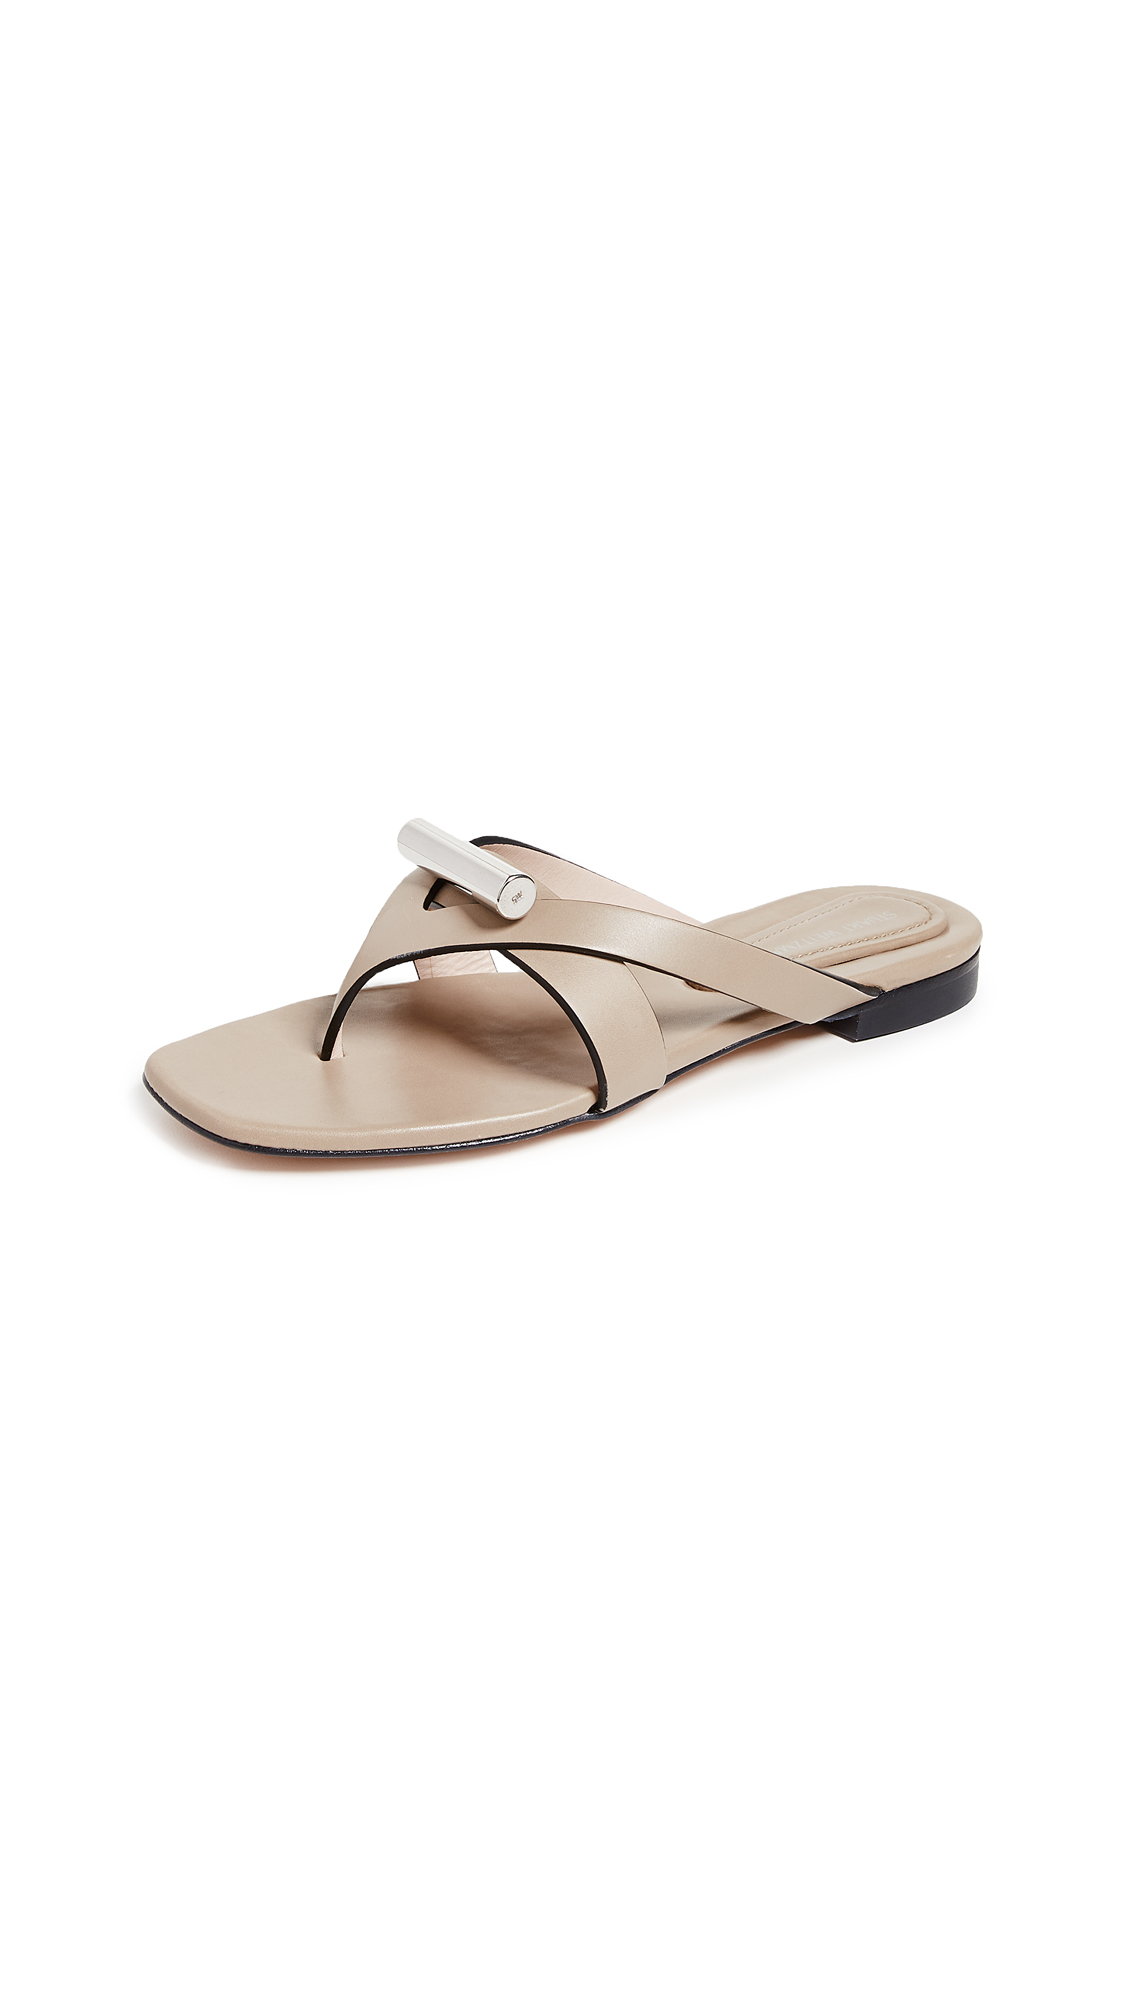 Stuart Weitzman Arro Thong Sandals - Brownstone